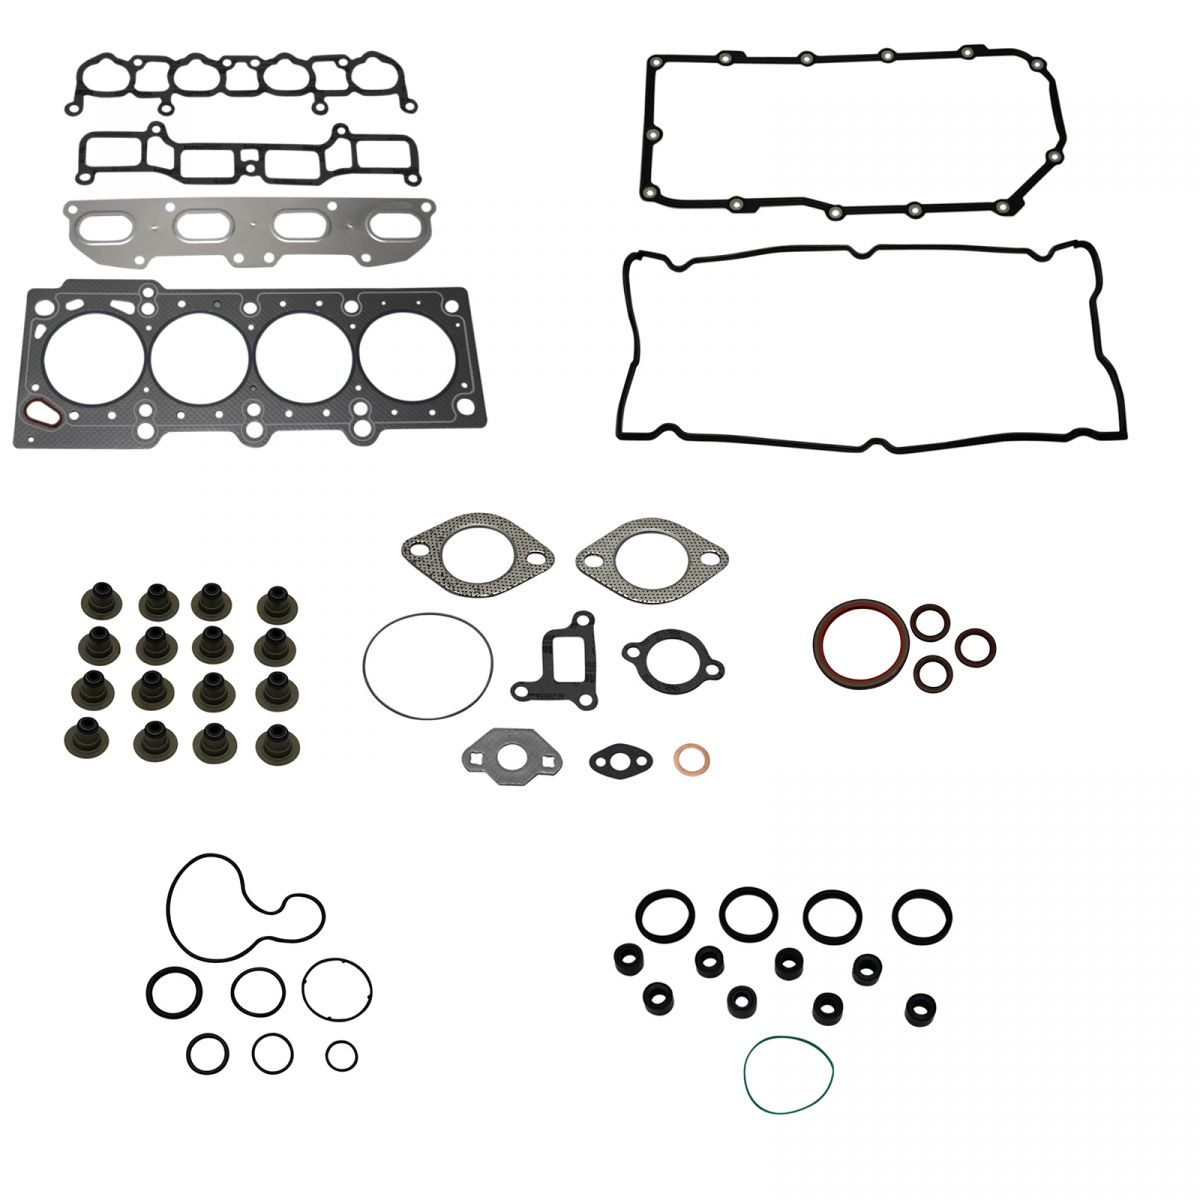 ANPART Automotive Replacement Parts Engine Kits Oil Pan Gasket Sets Fit Plymouth Neon 4-Door